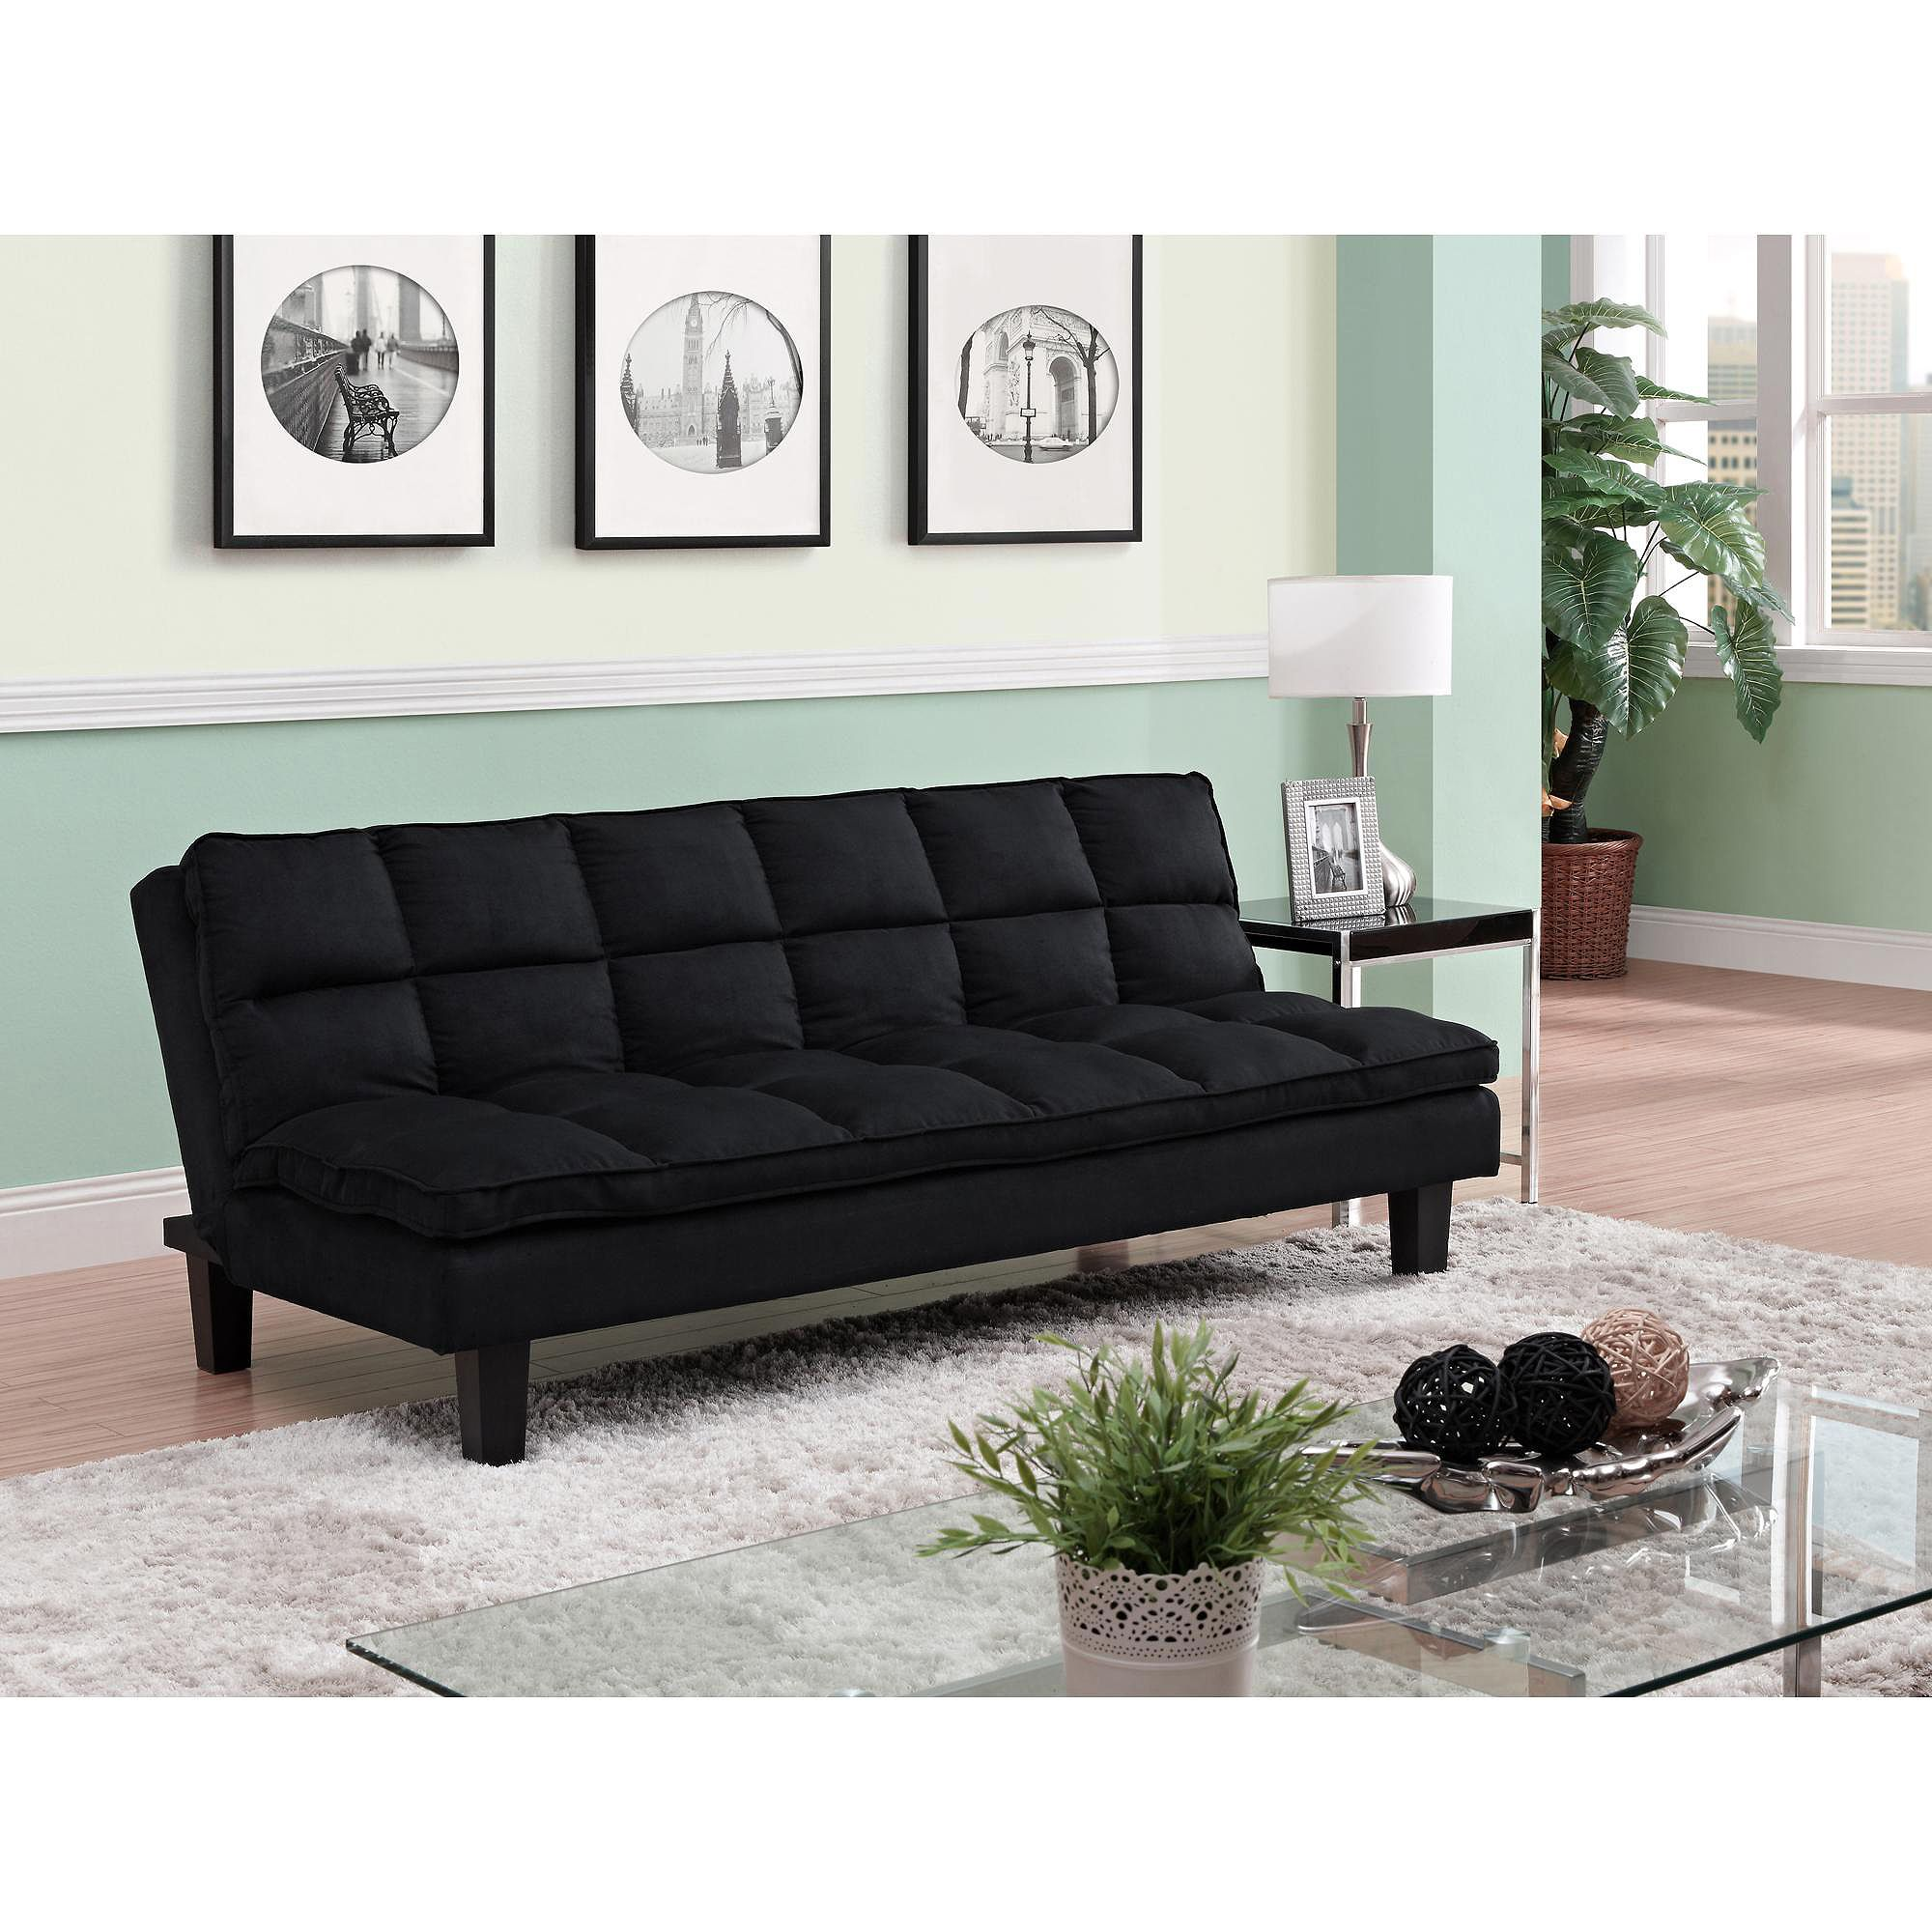 Miraculous Pin By Rebeccarcahill On Sofas Couches In 2019 Futon Spiritservingveterans Wood Chair Design Ideas Spiritservingveteransorg